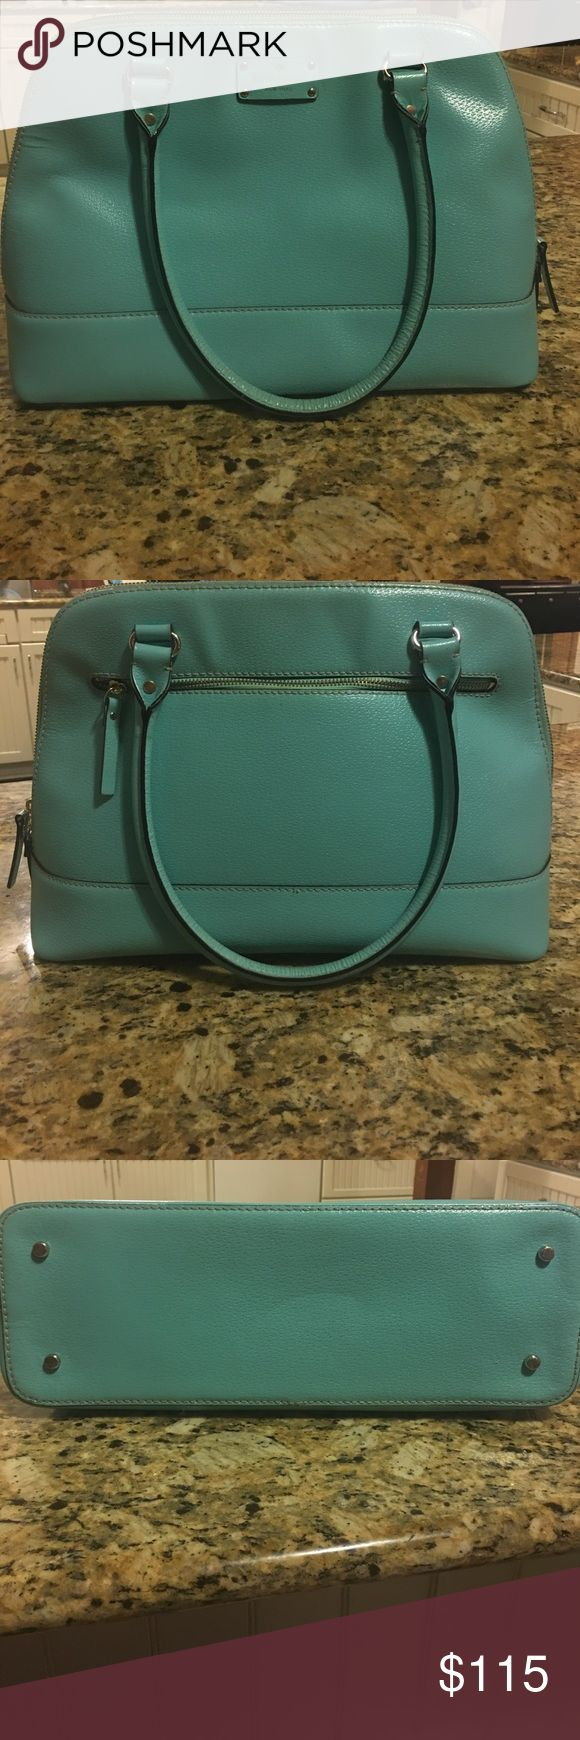 Authentic Kate Spade Wellesley Rachelle Sea foam green leather purse with zip top closure. Gold plated hardware and feet, Interior zip pocket and double slide pockets. Some ware and tear due to carrying it for a few months. Minor stains inside. Good condition! kate spade Bags Shoulder Bags